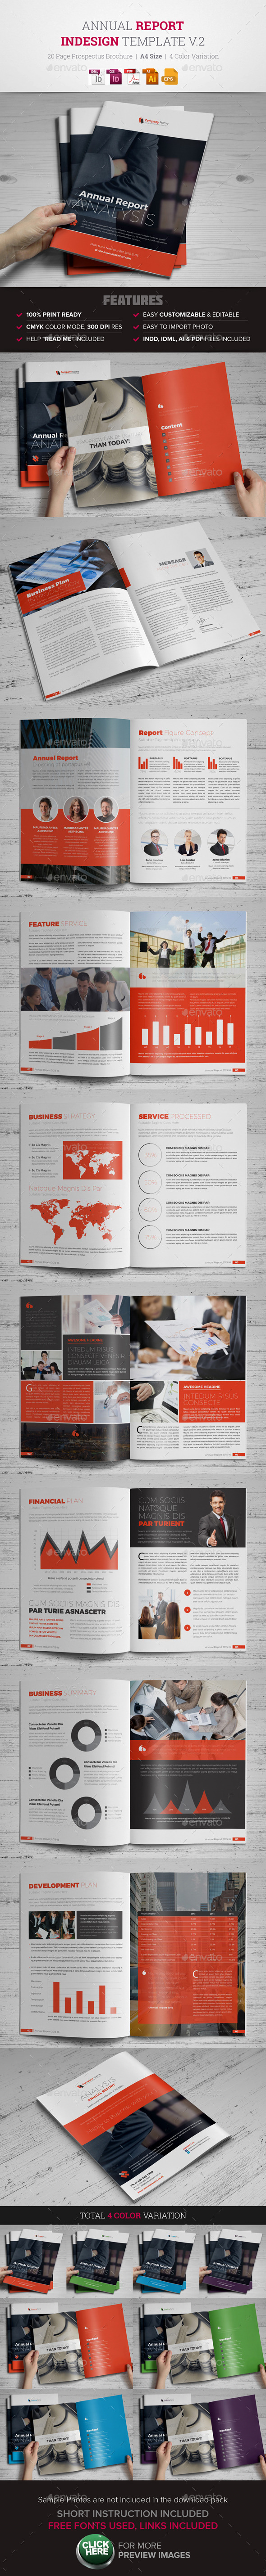 Annual Report InDesign Template v2  - Corporate Brochures